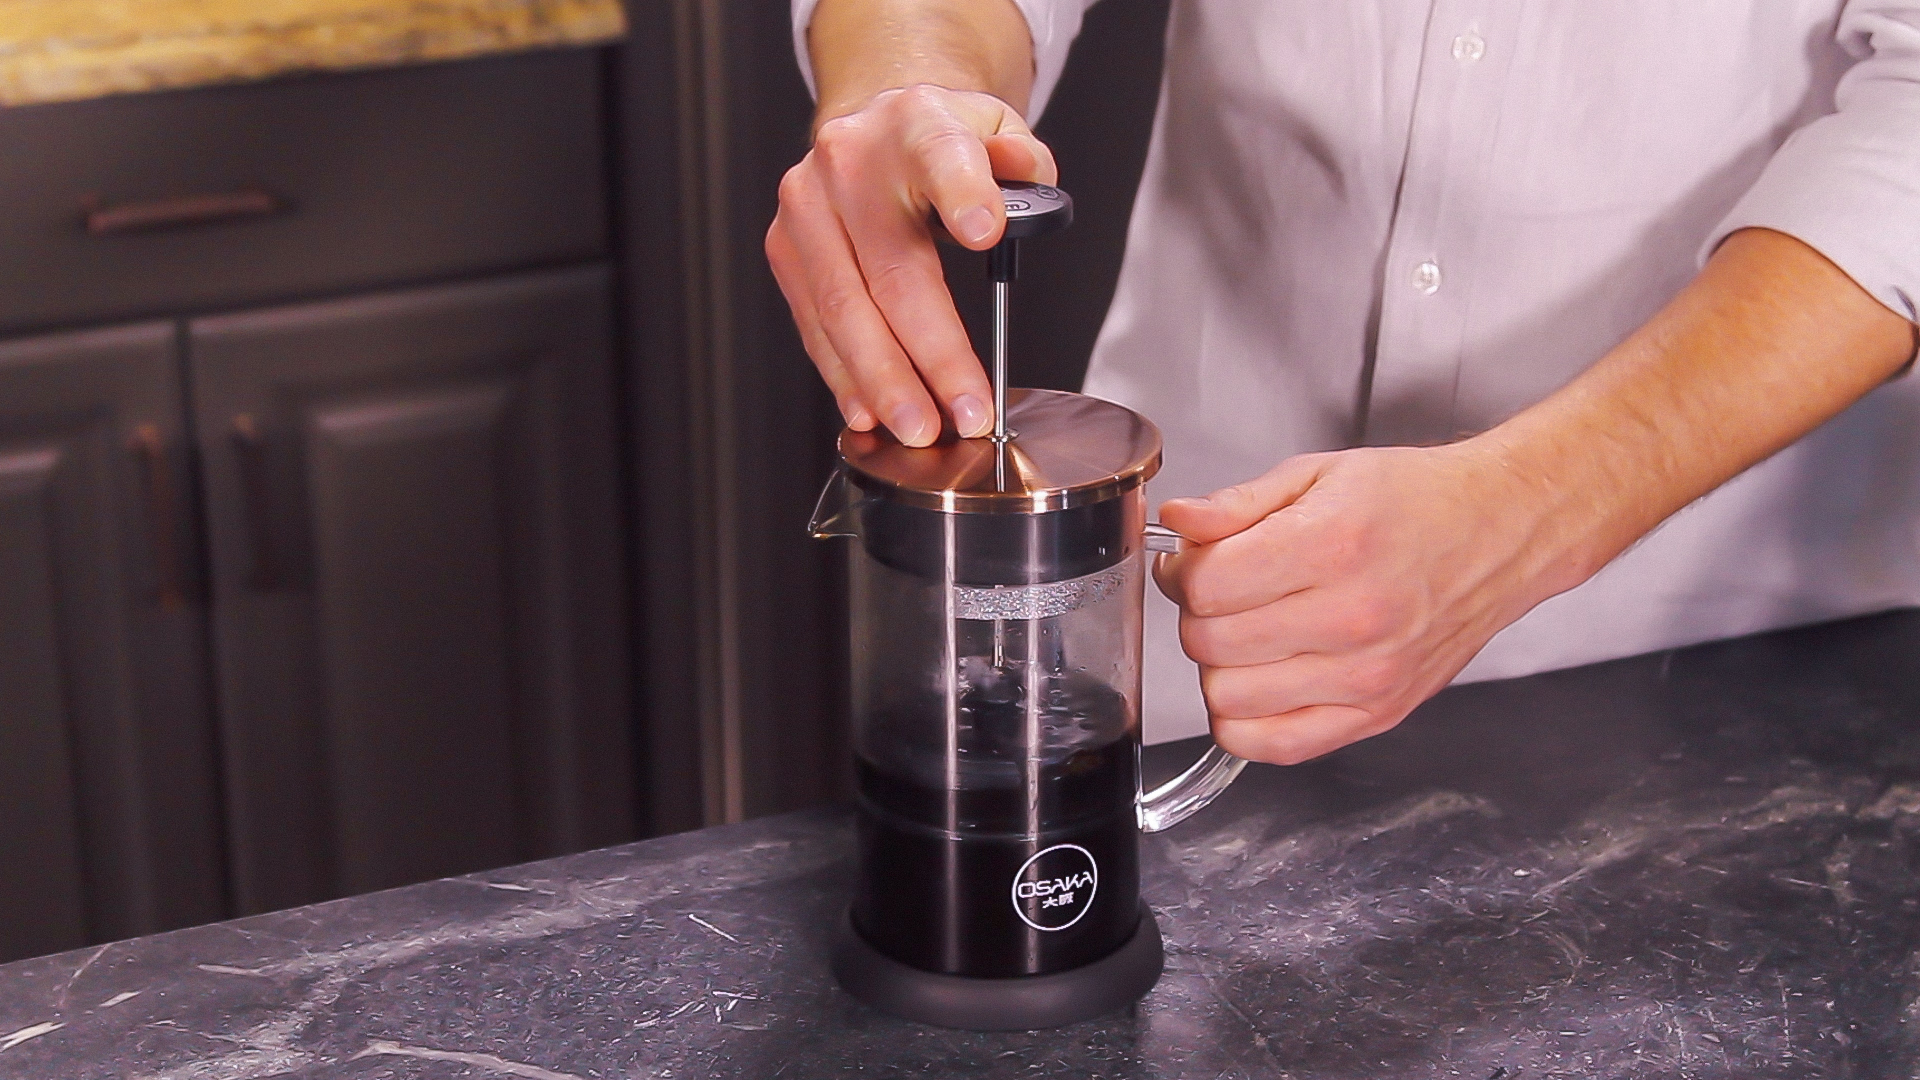 How to use the Osaka French Press